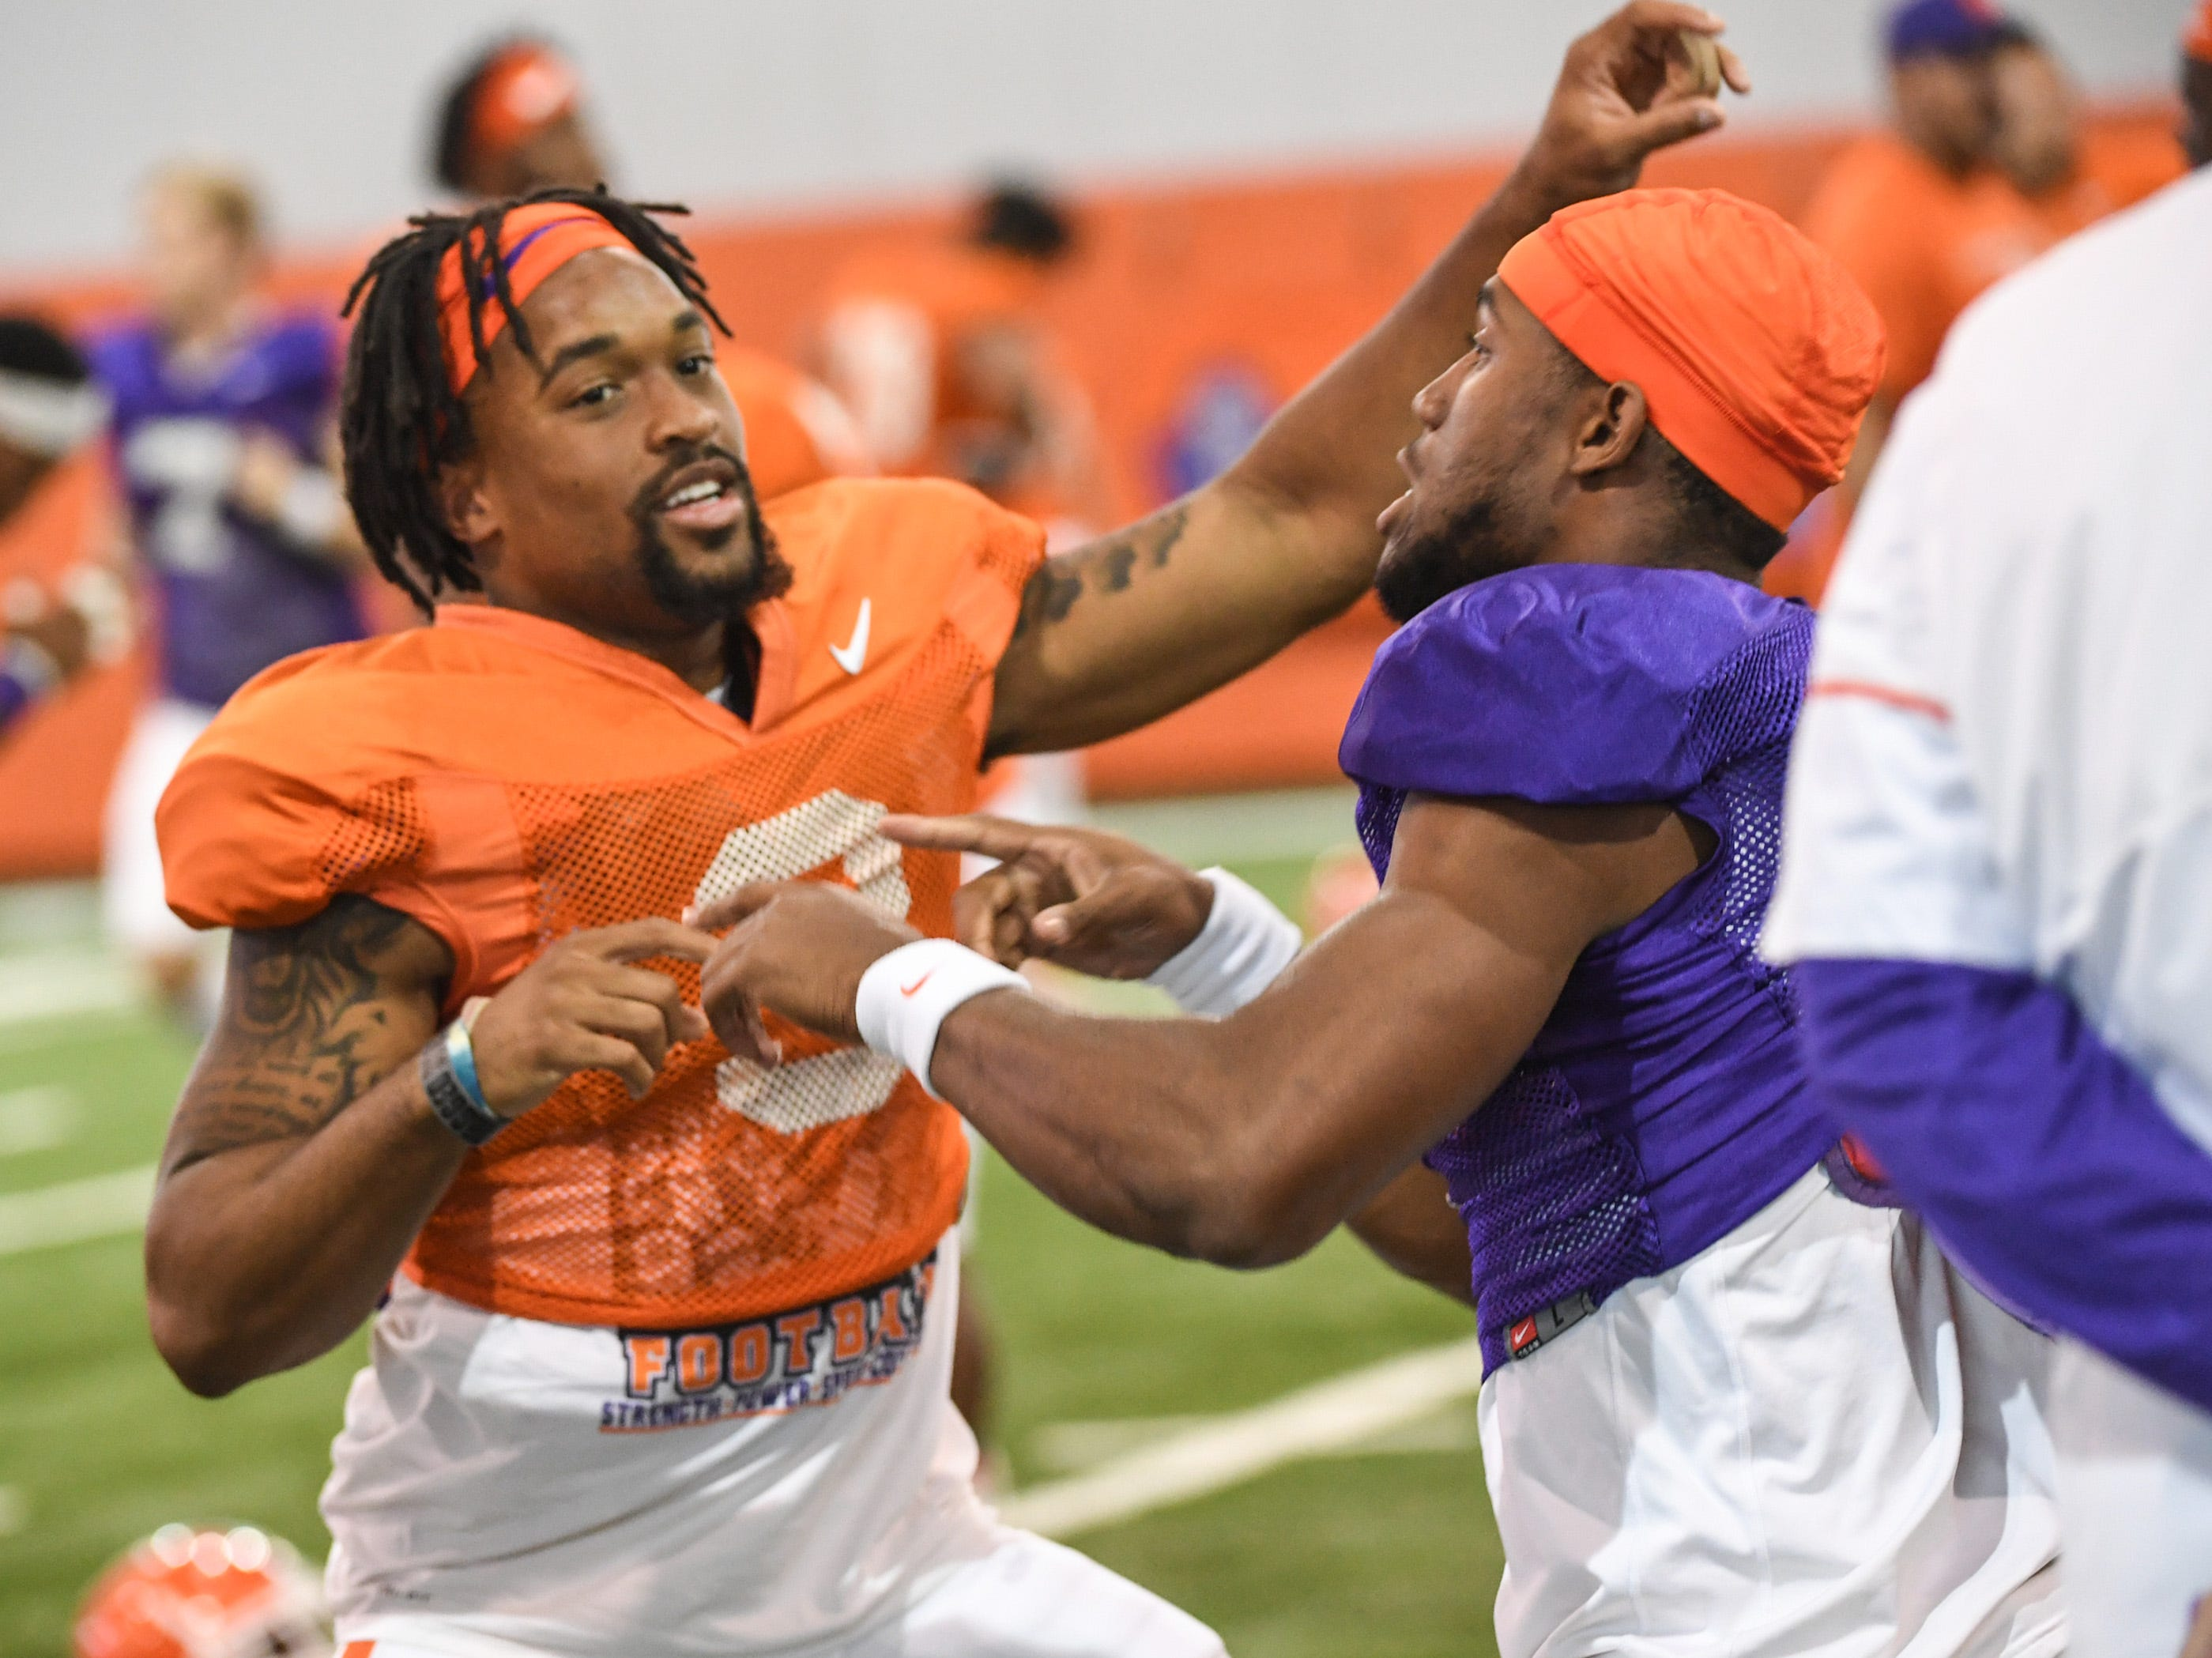 Clemson wide receiver Amari Rodgers (3) and quarterback Kelly Bryant (2) during fall practice in Clemson on Wednesday.